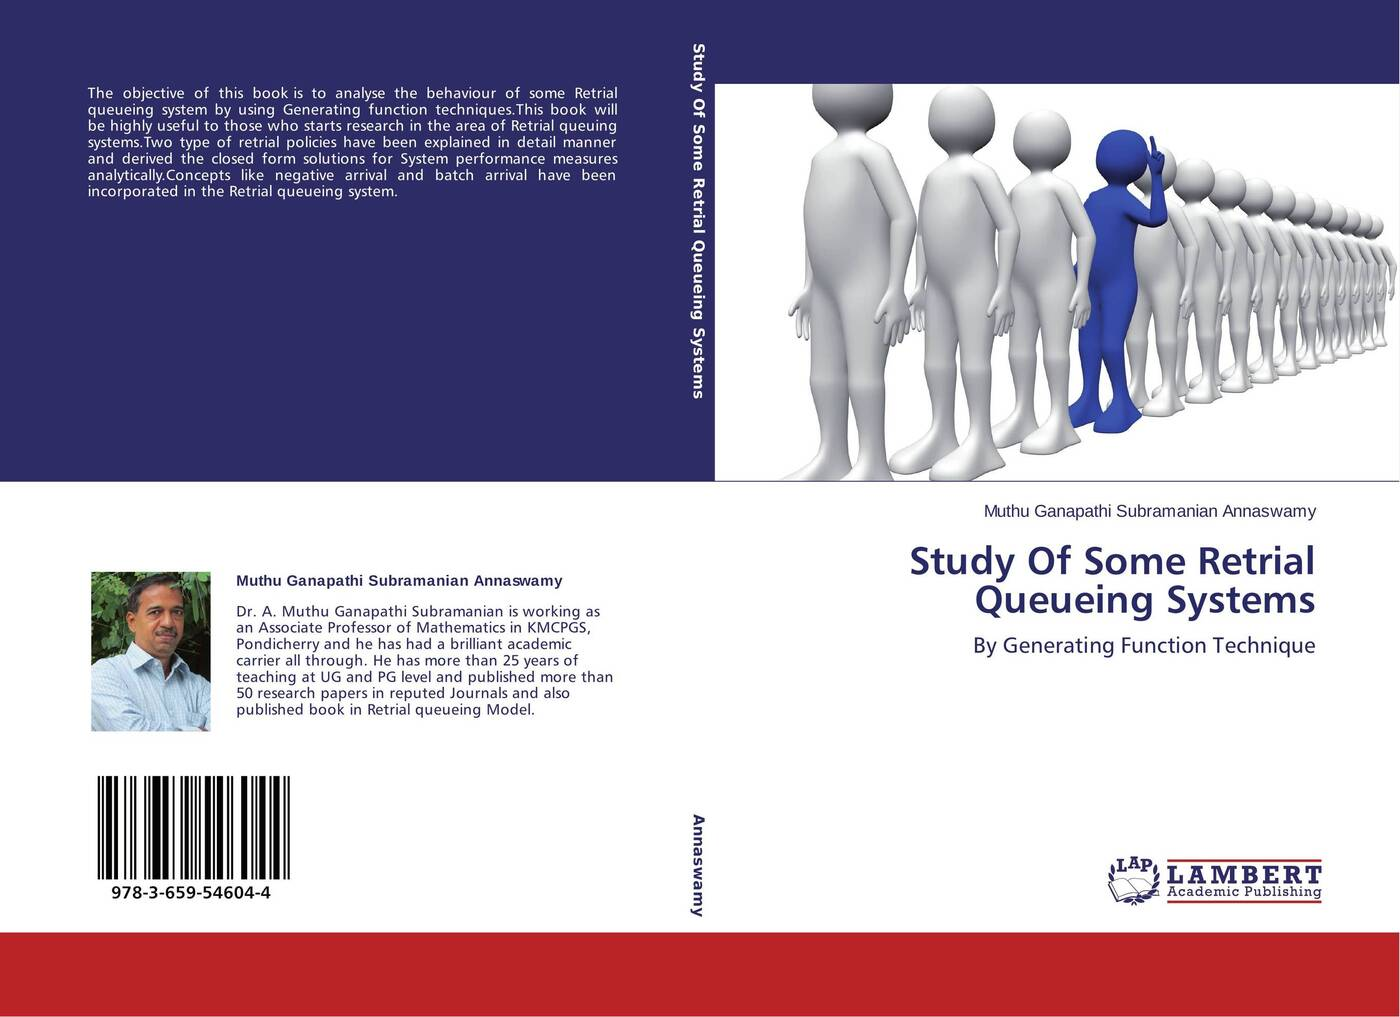 Muthu Ganapathi Subramanian Annaswamy Study Of Some Retrial Queueing Systems creating models of queueing systems using gpss world